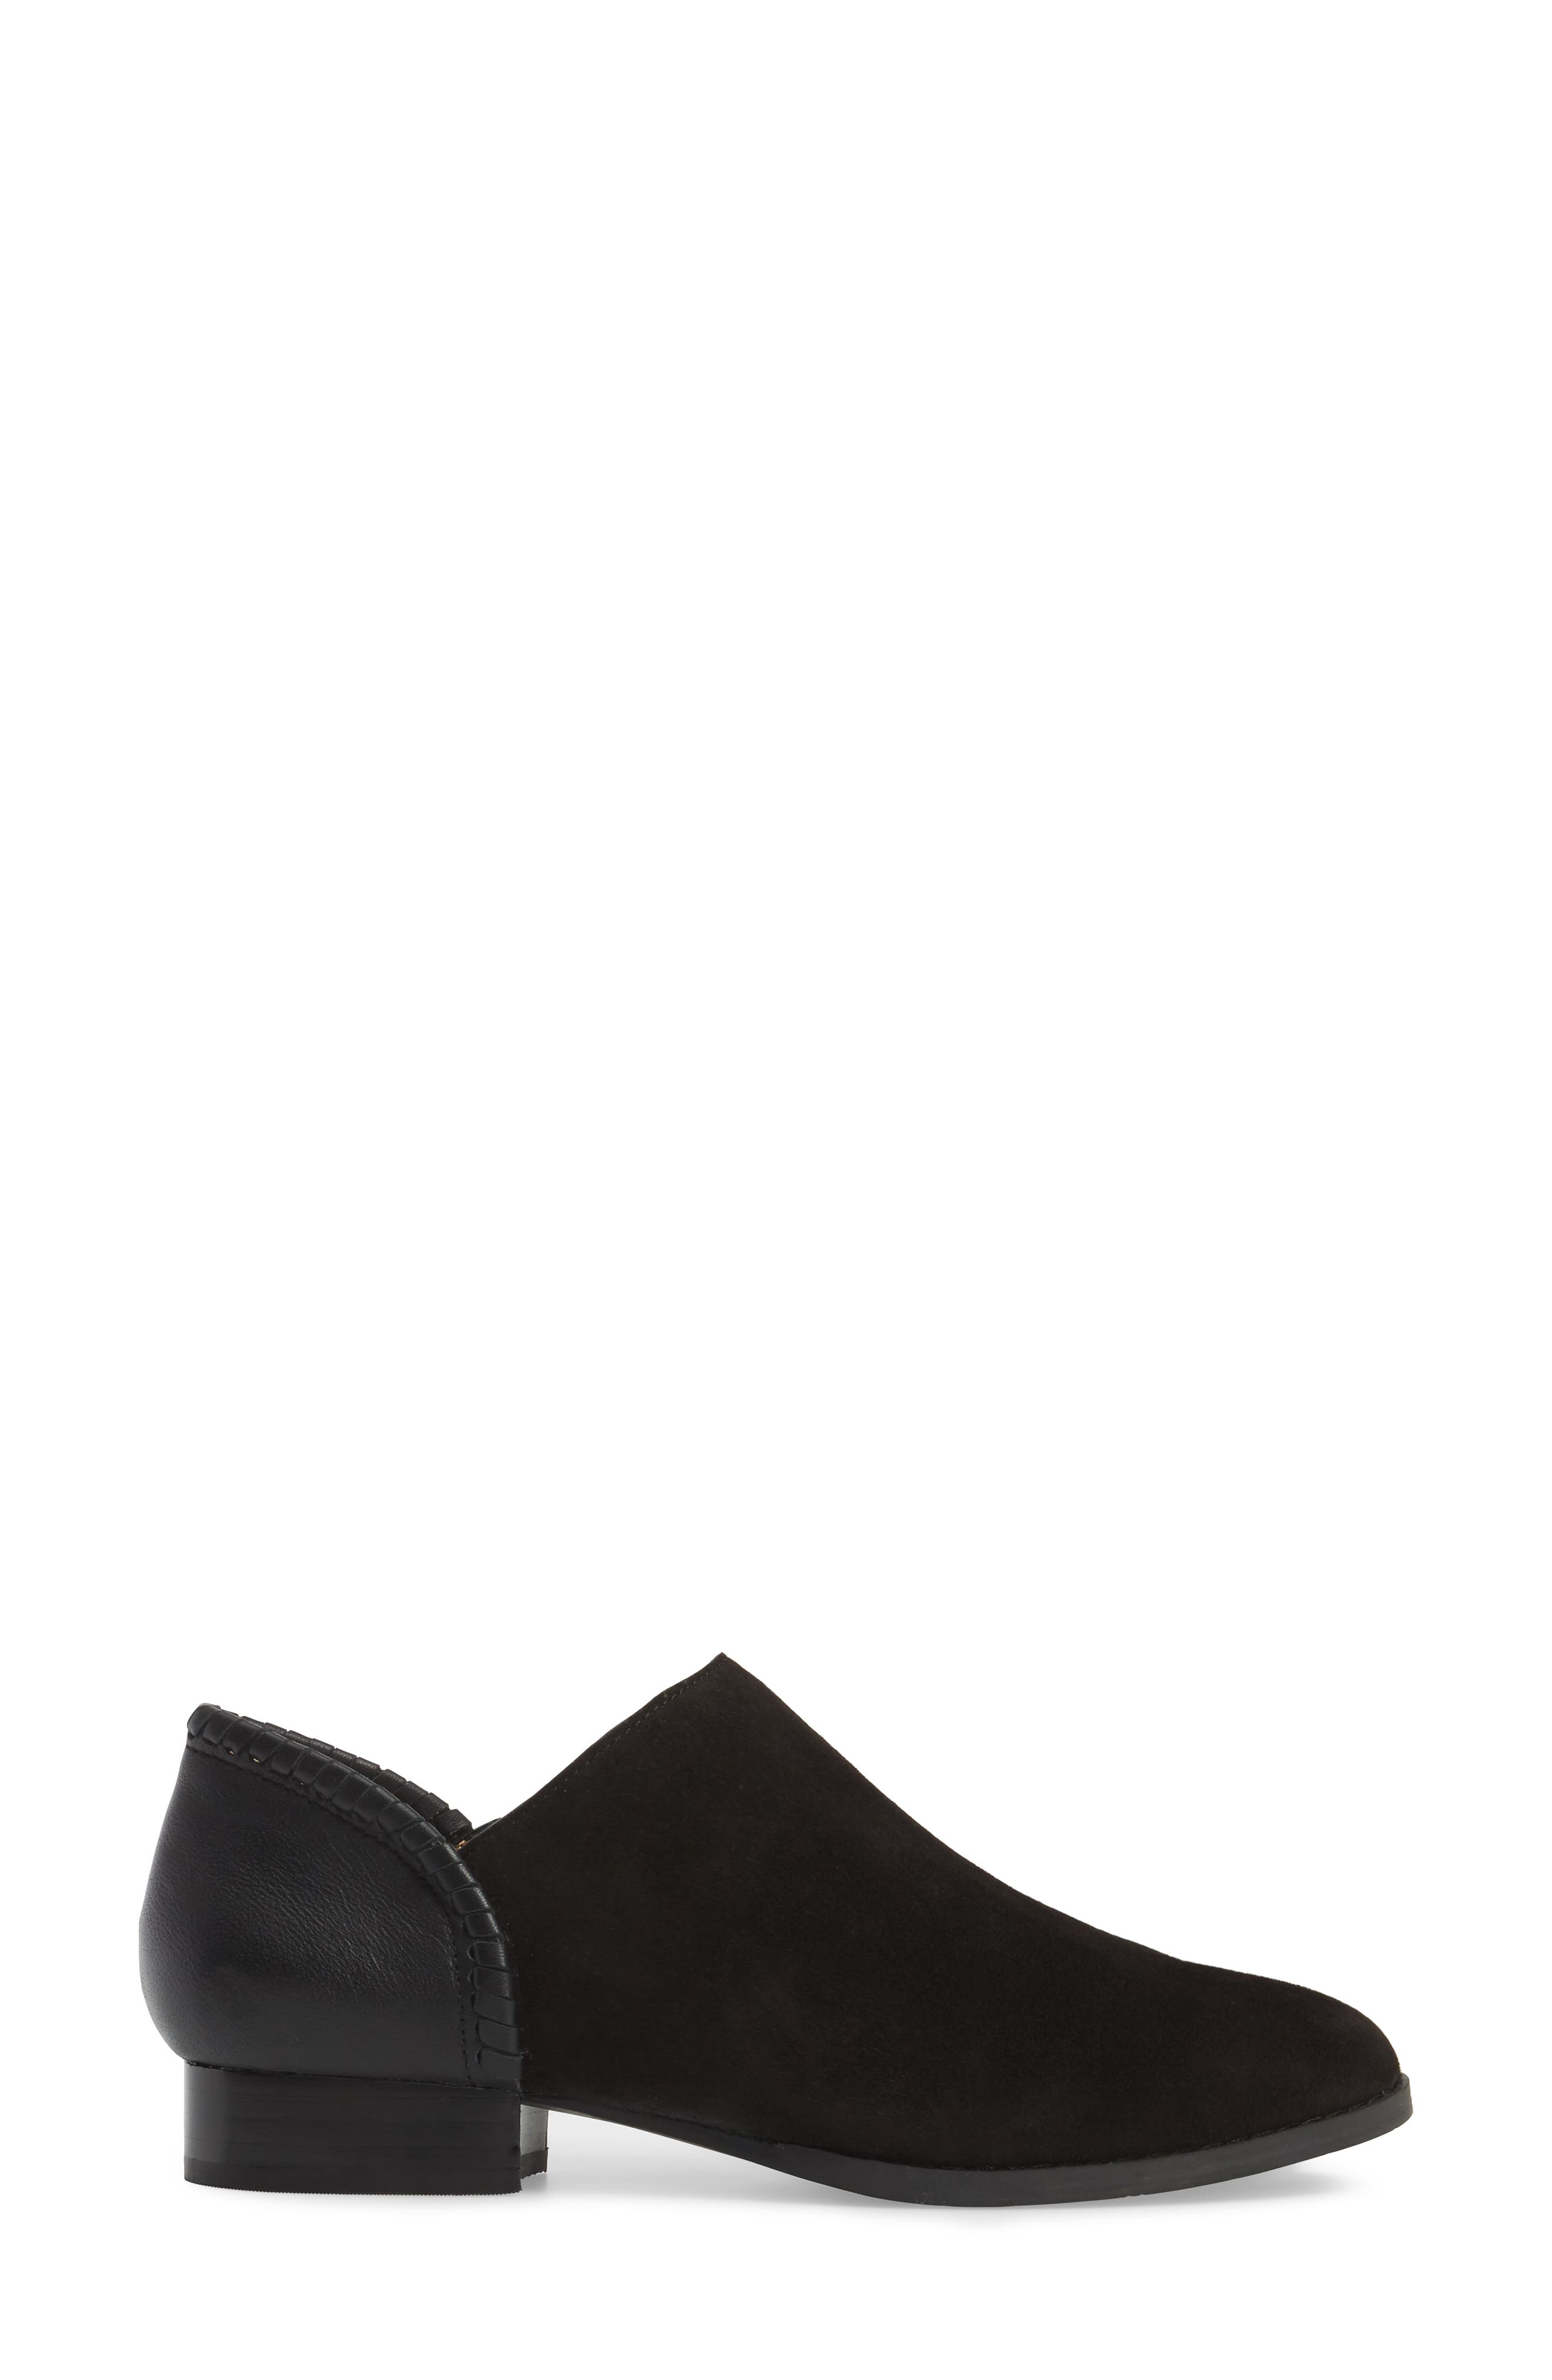 Avery Low Bootie,                             Alternate thumbnail 3, color,                             001